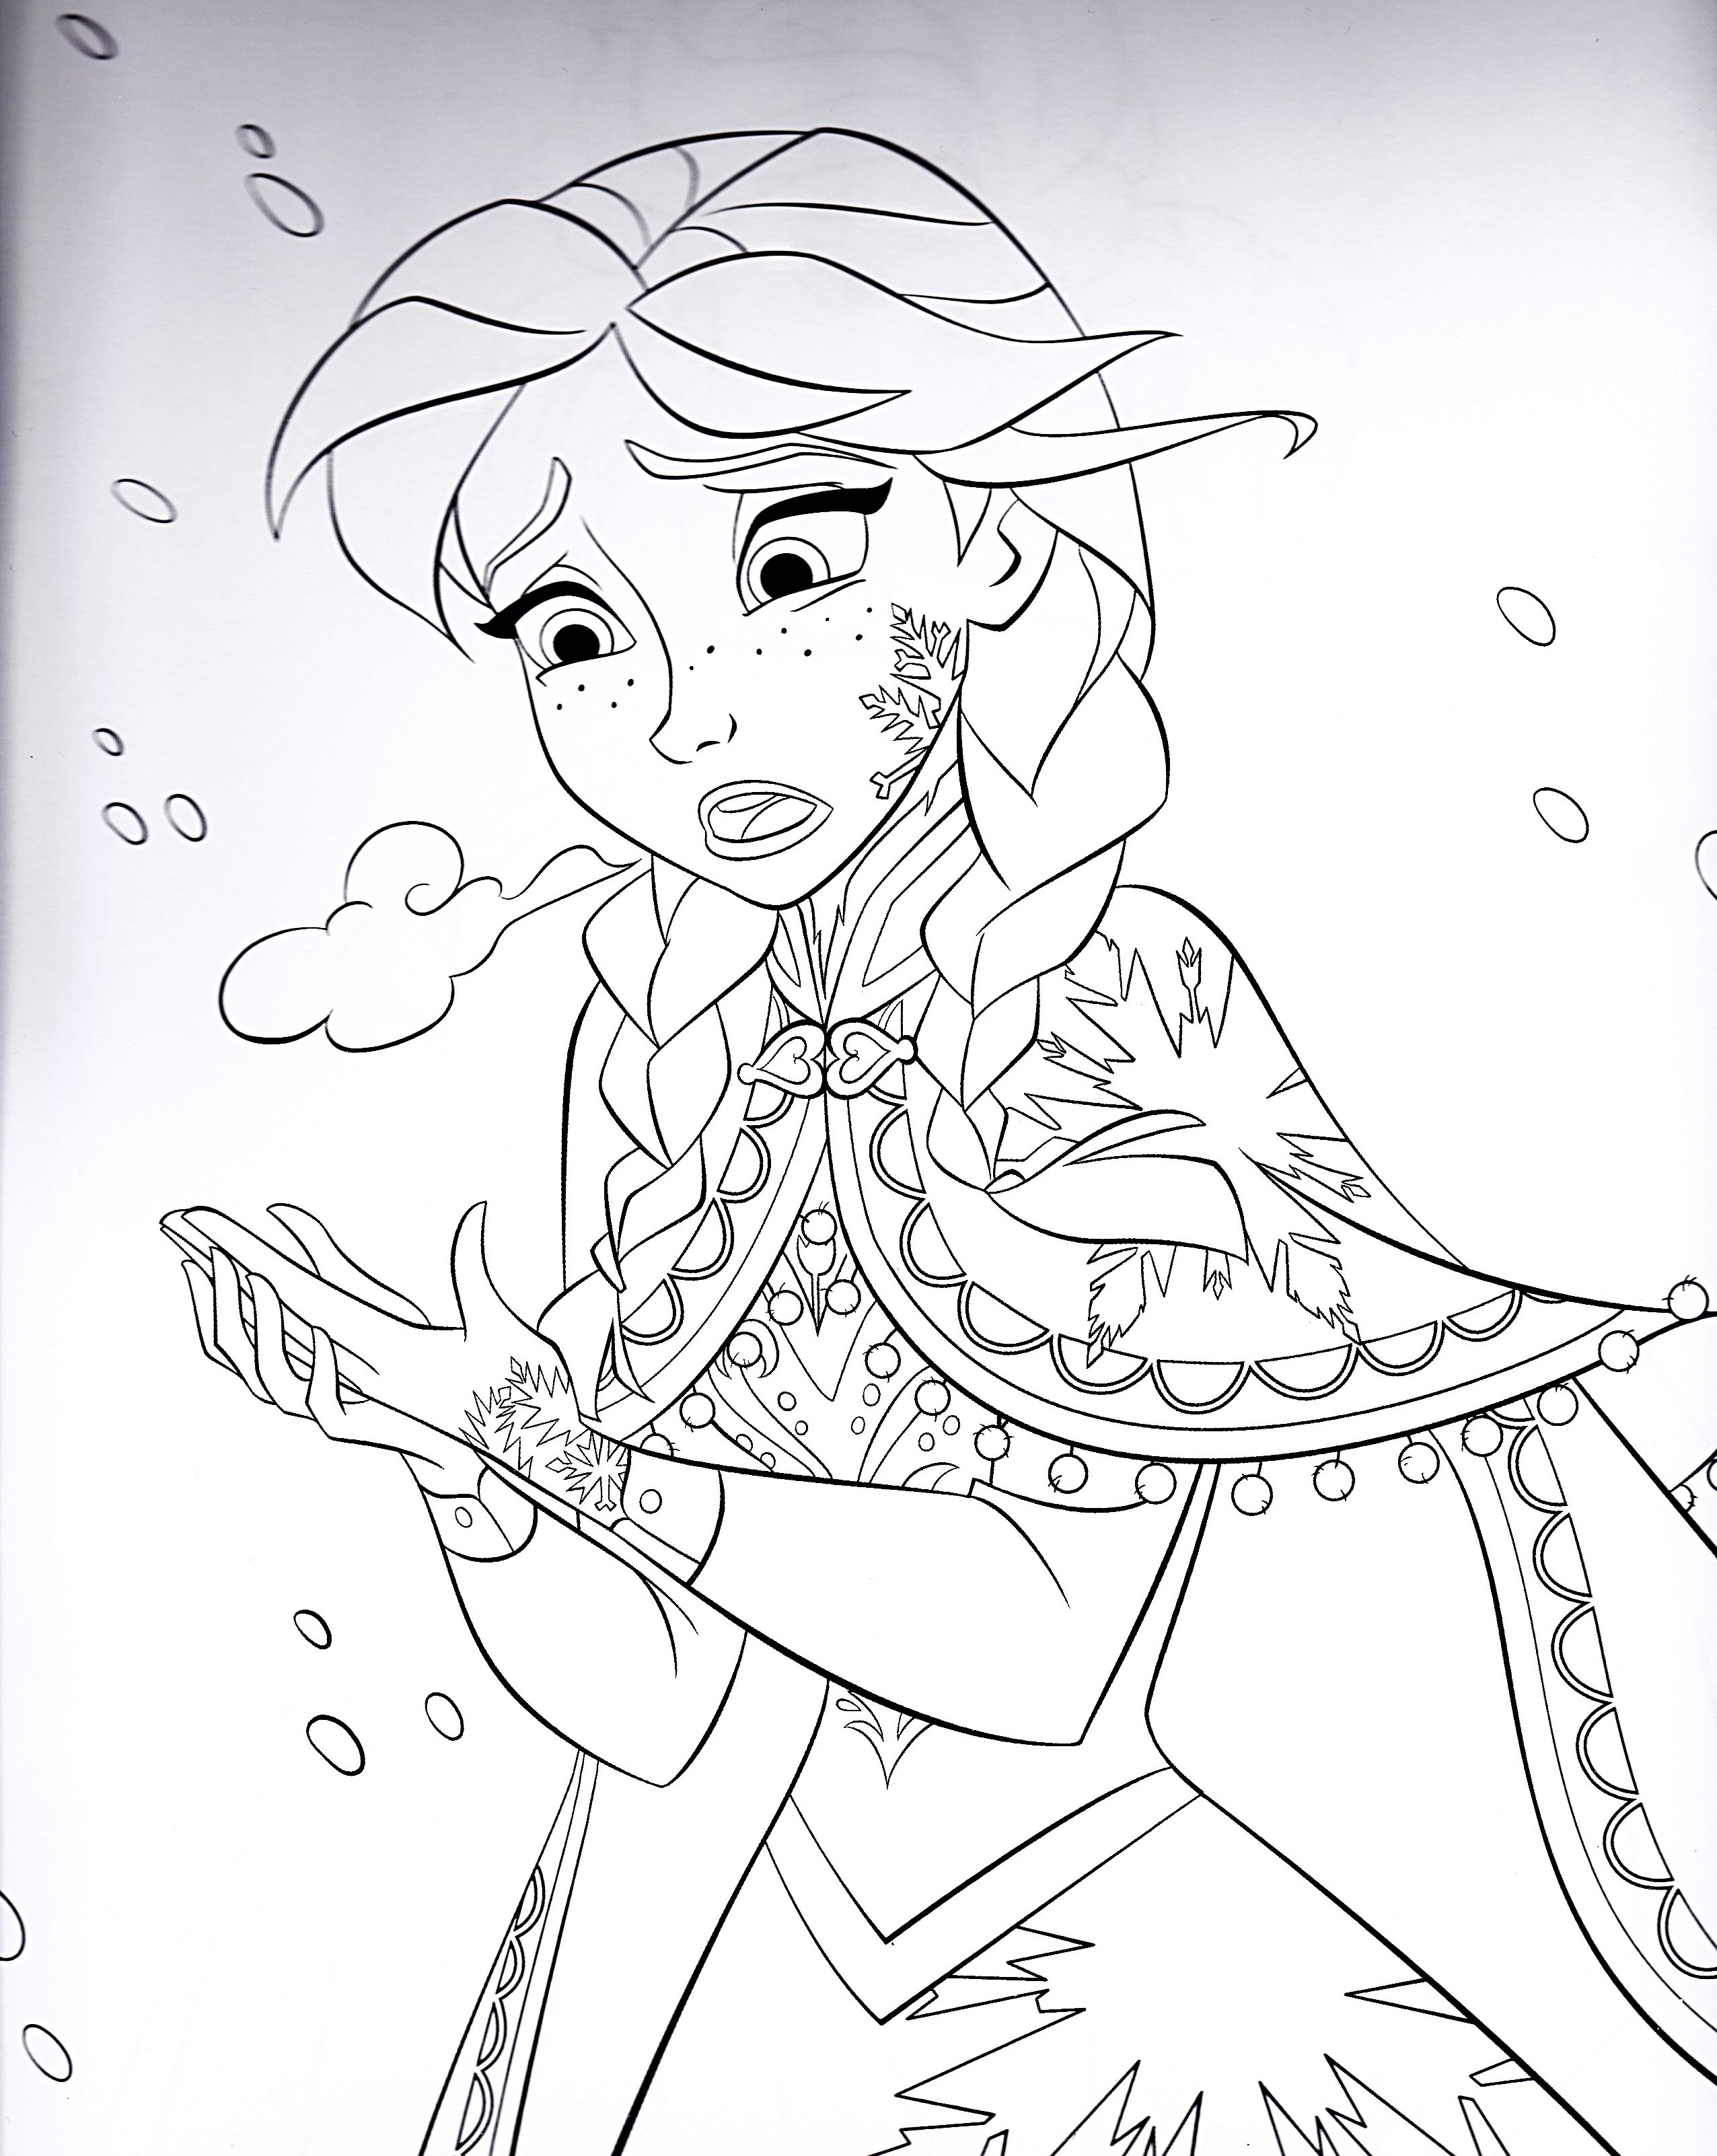 Princess anna of arendelle (pronounced ah-na) is the protagonist of ...